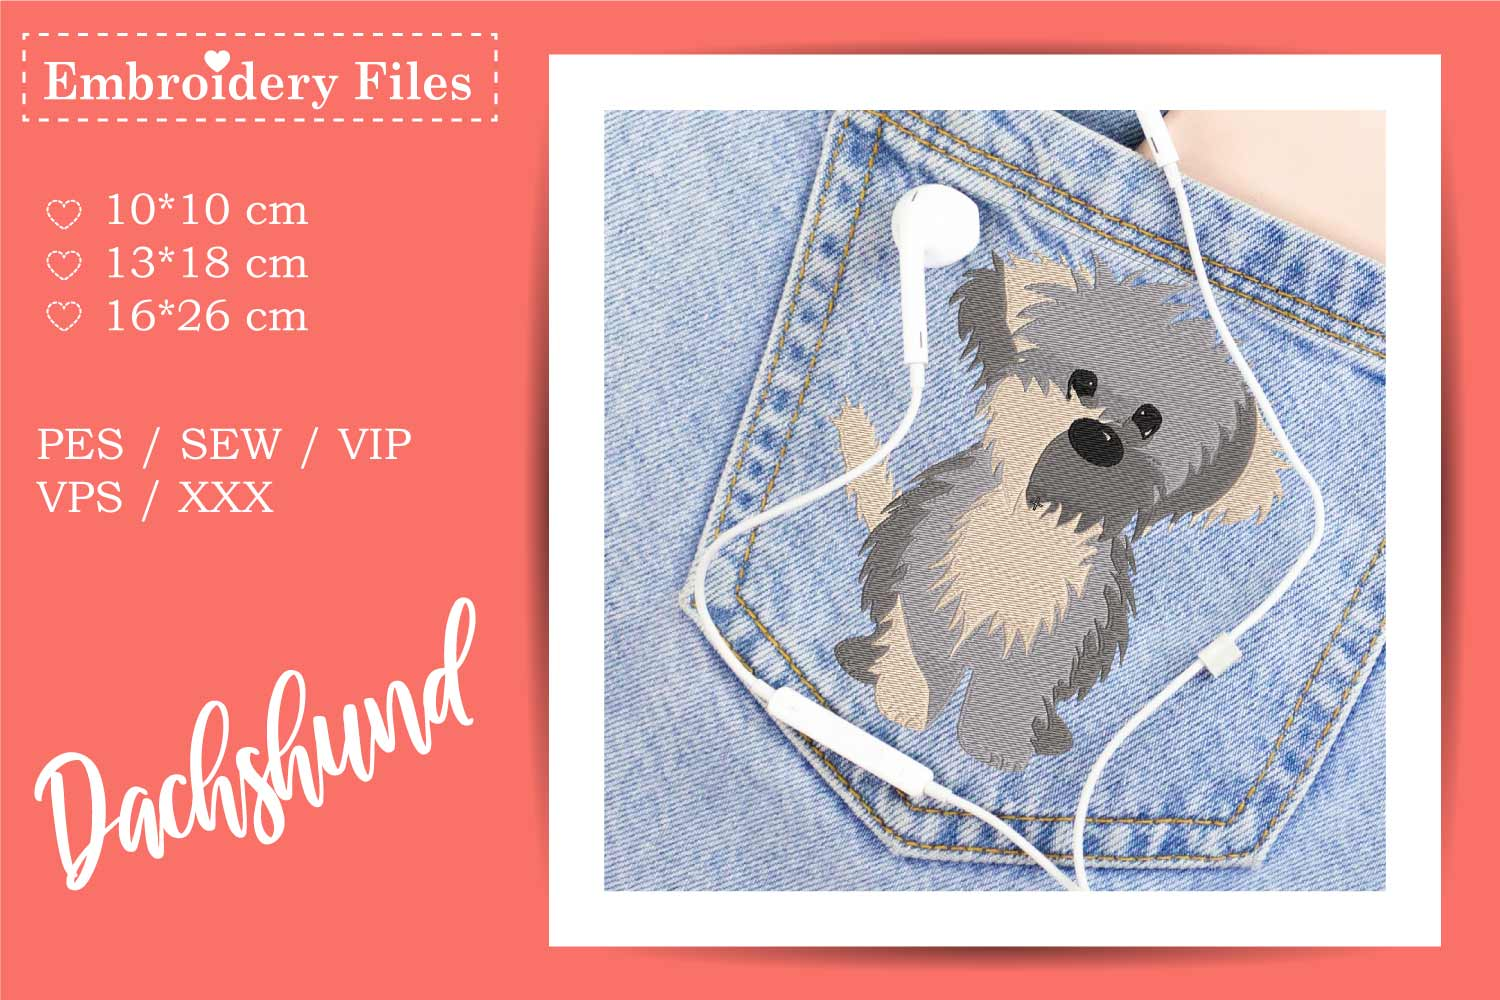 Dogs - Mini Bundle - Embroidery Files for Beginners example image 3